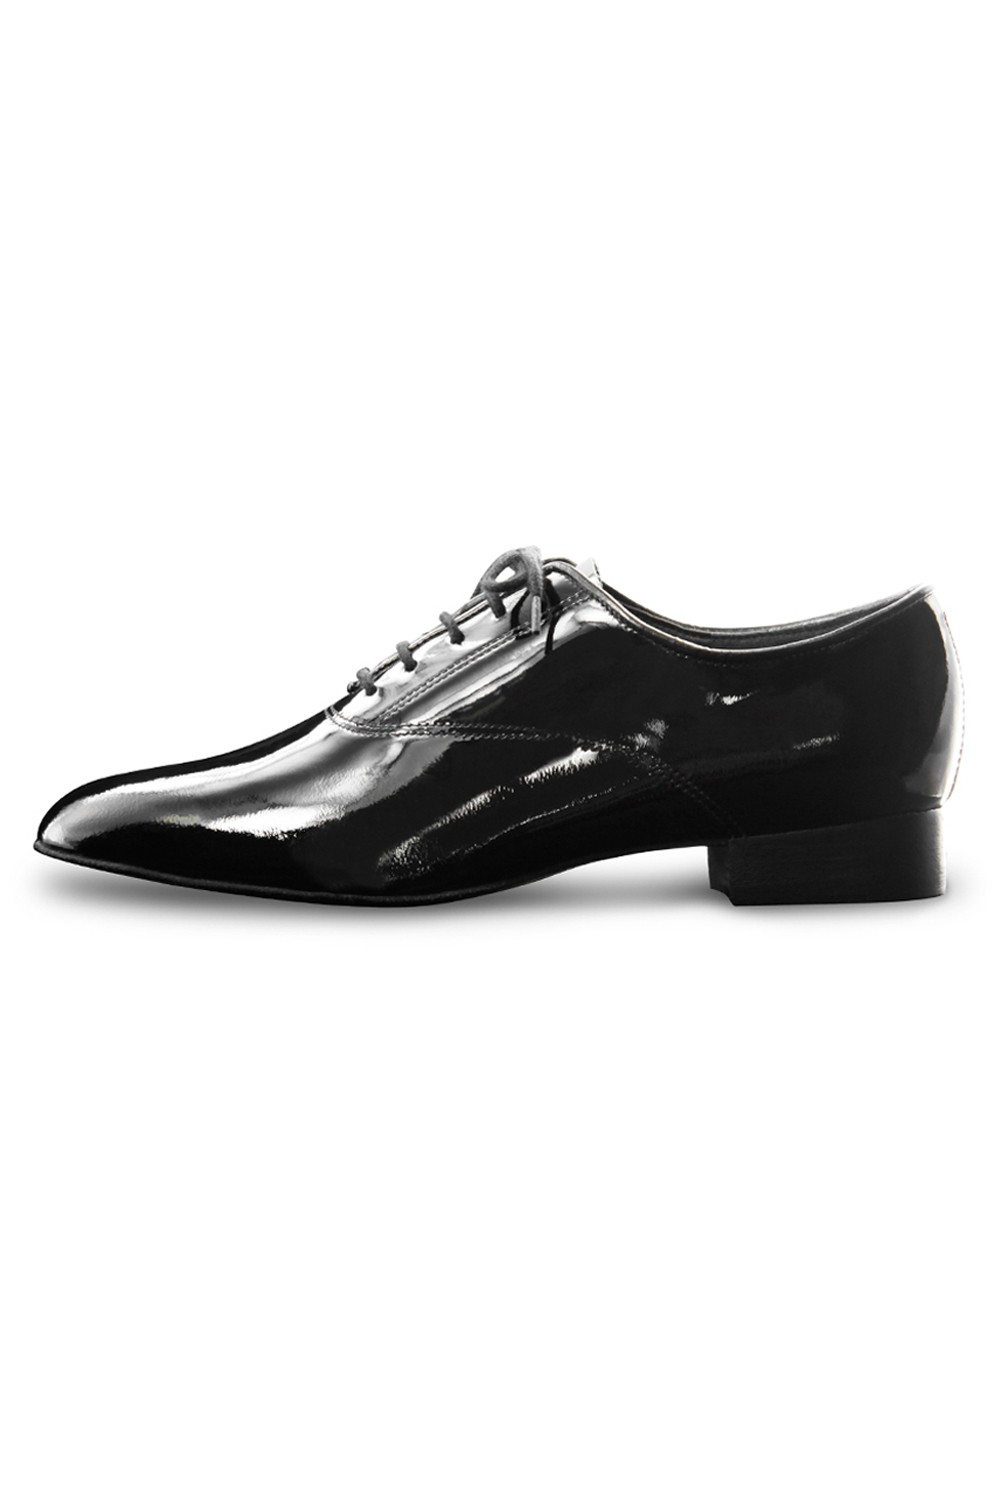 Richelieu Men's Ballroom & Latin Shoes